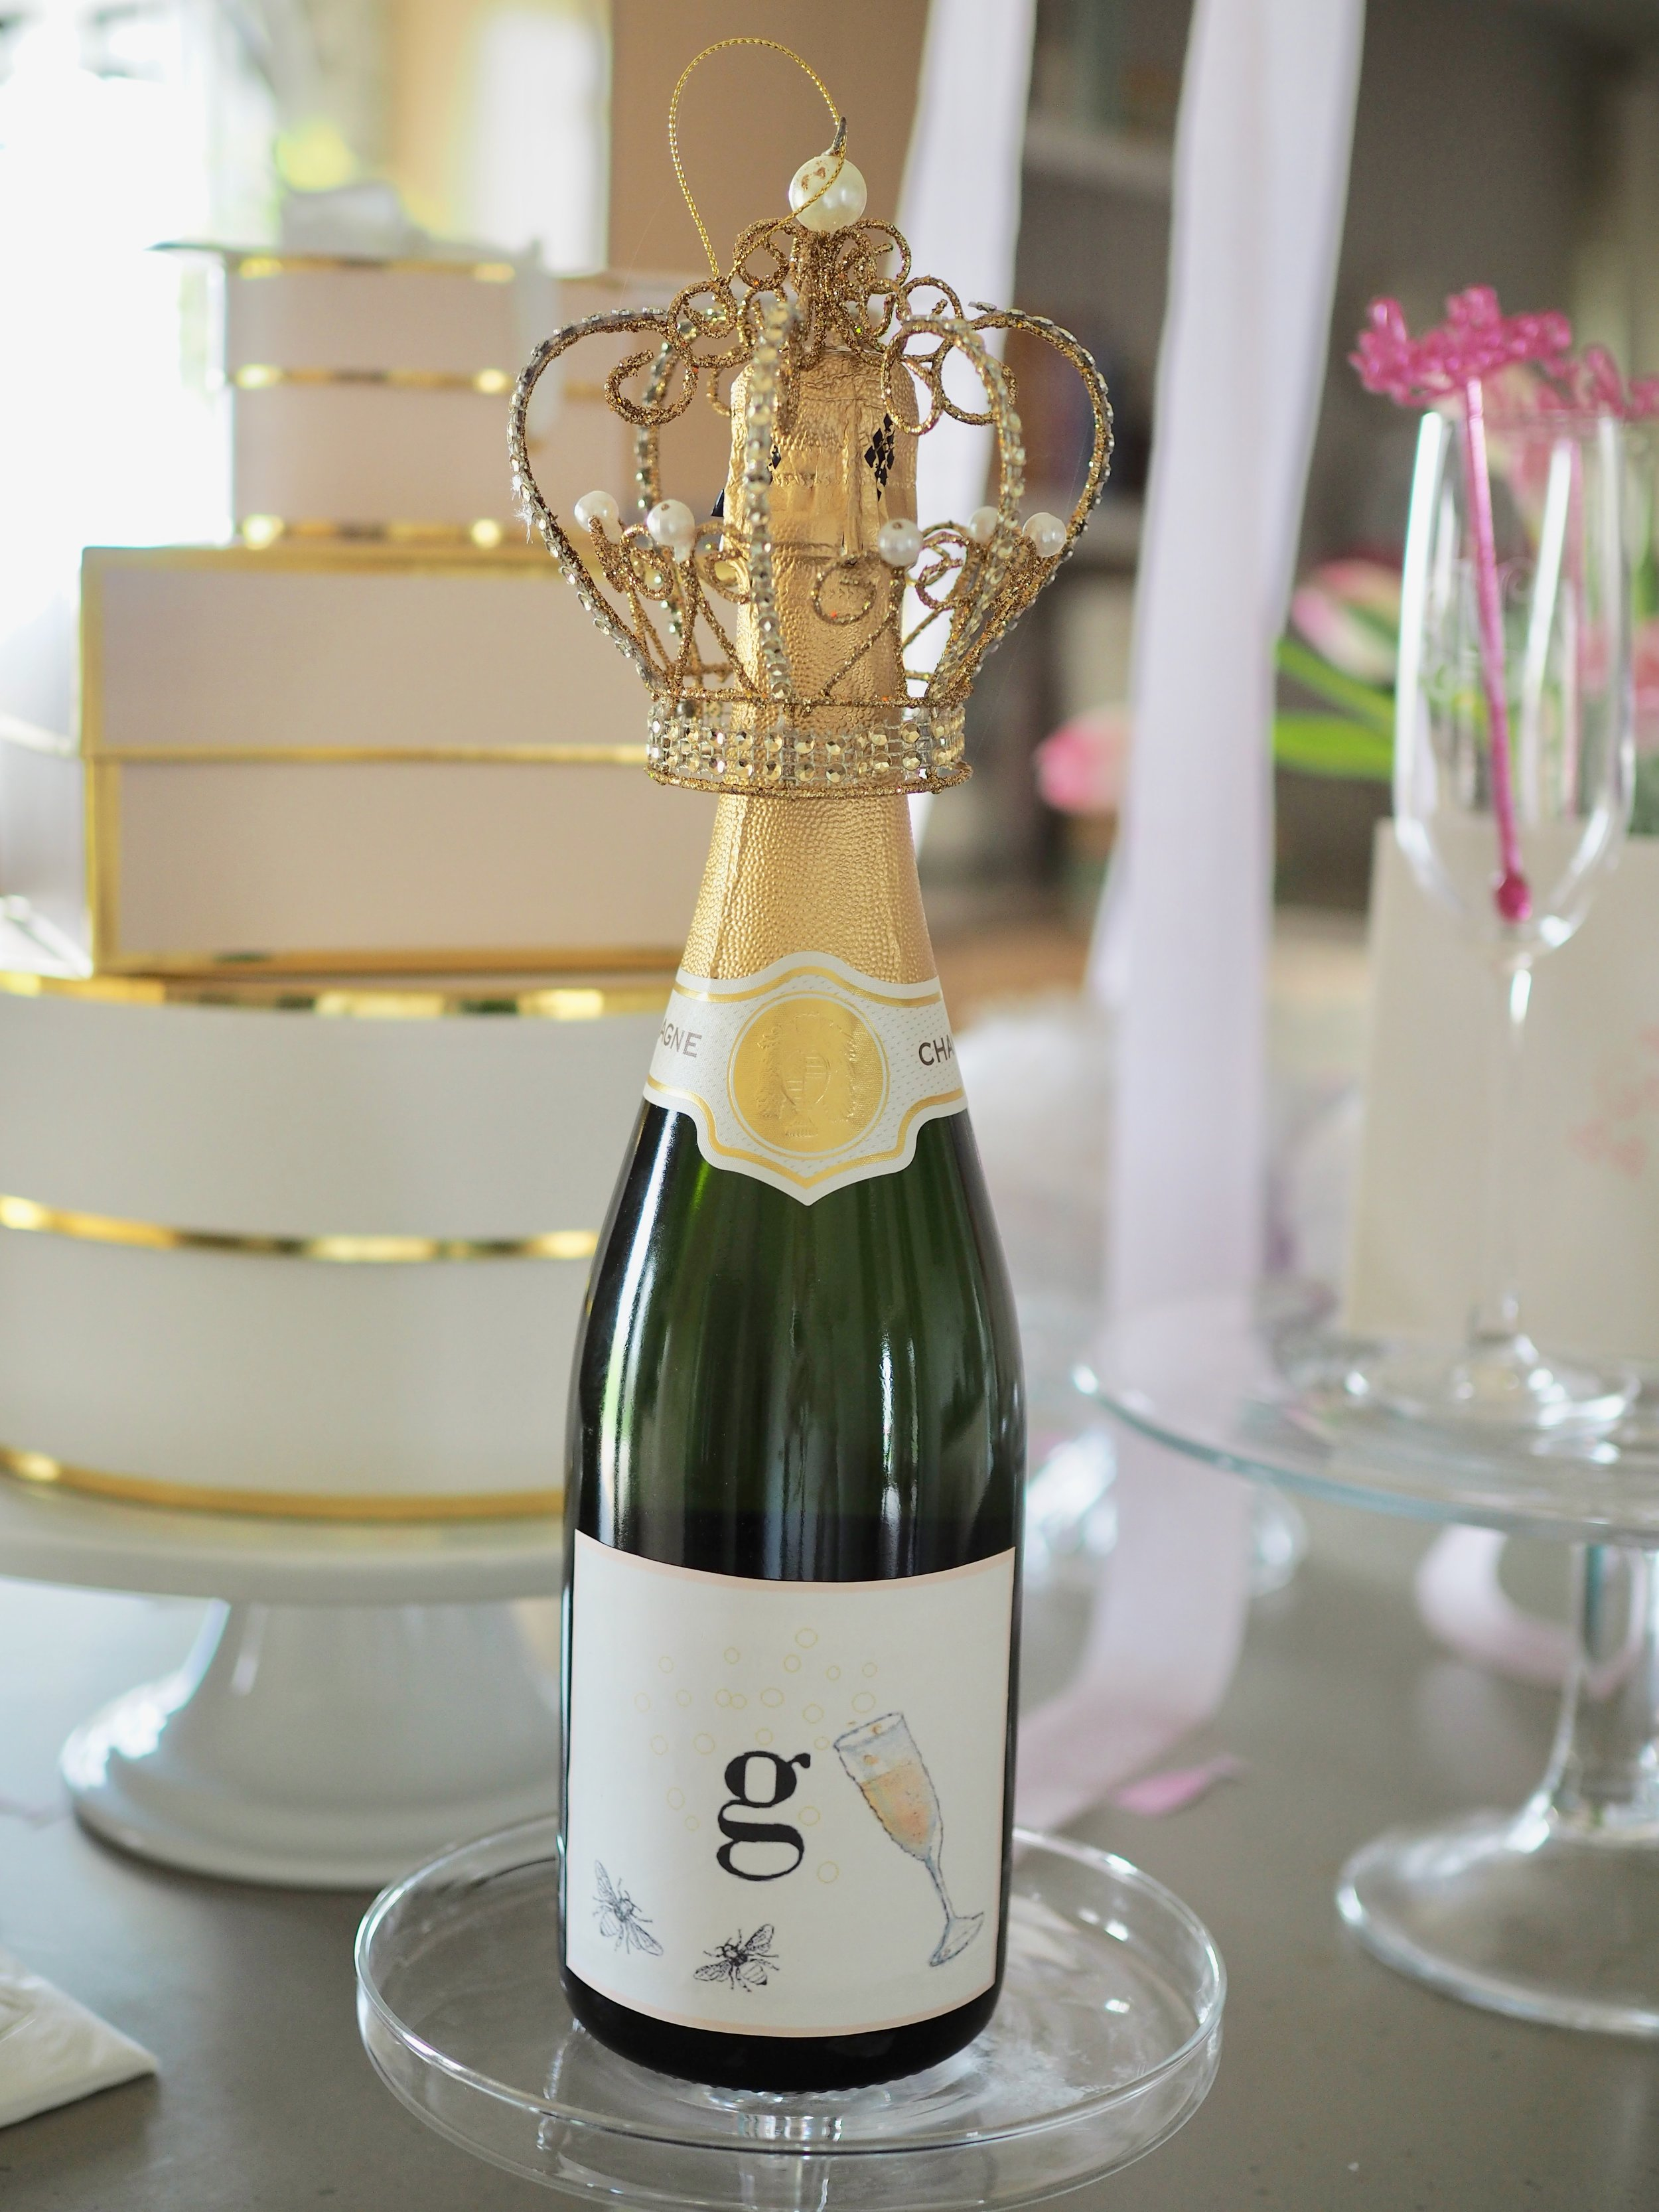 Christina designed these Champagne bottle labels